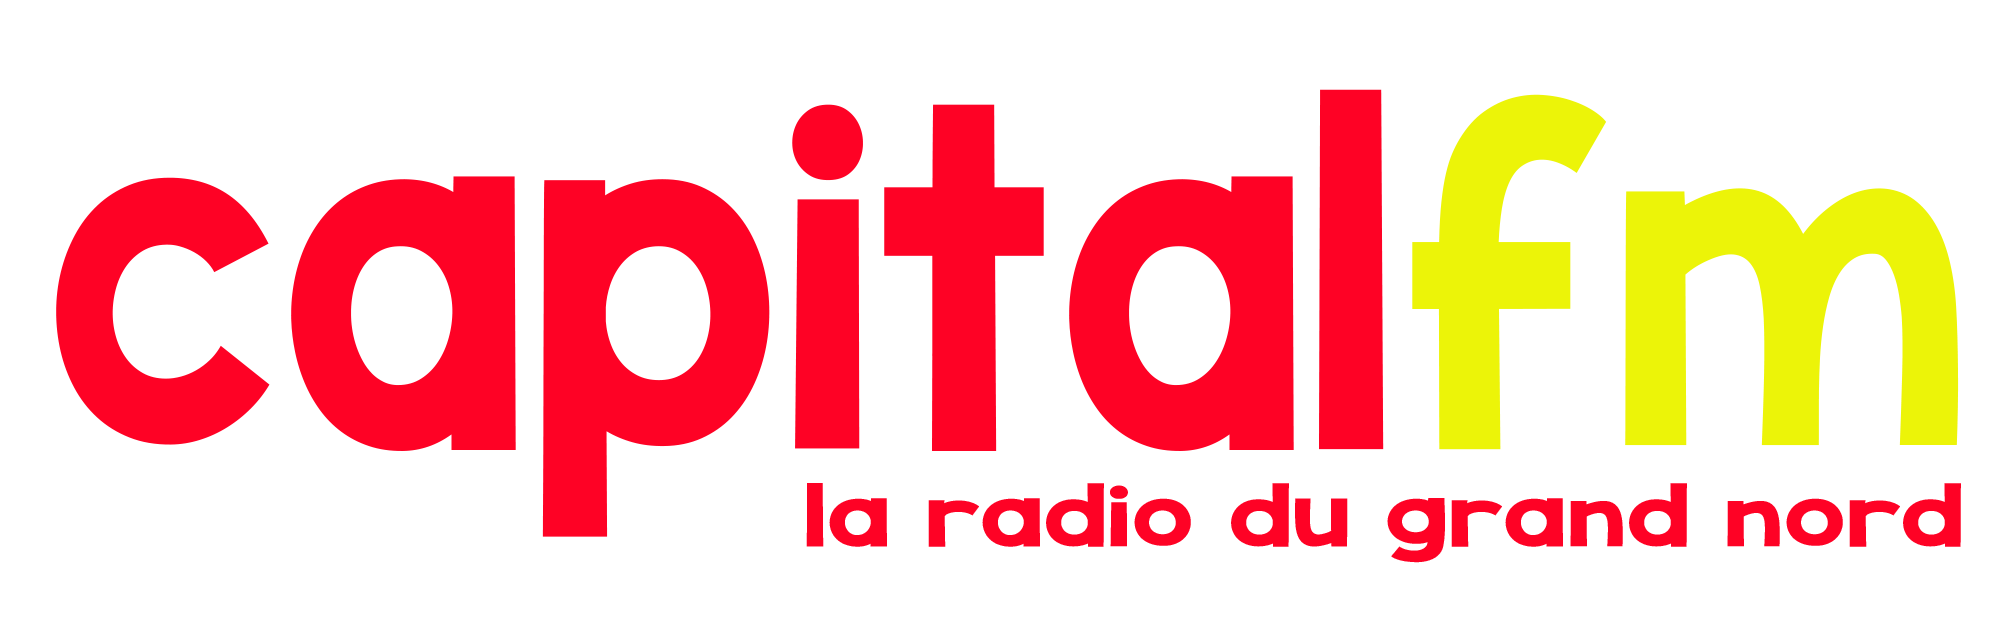 logo transparent